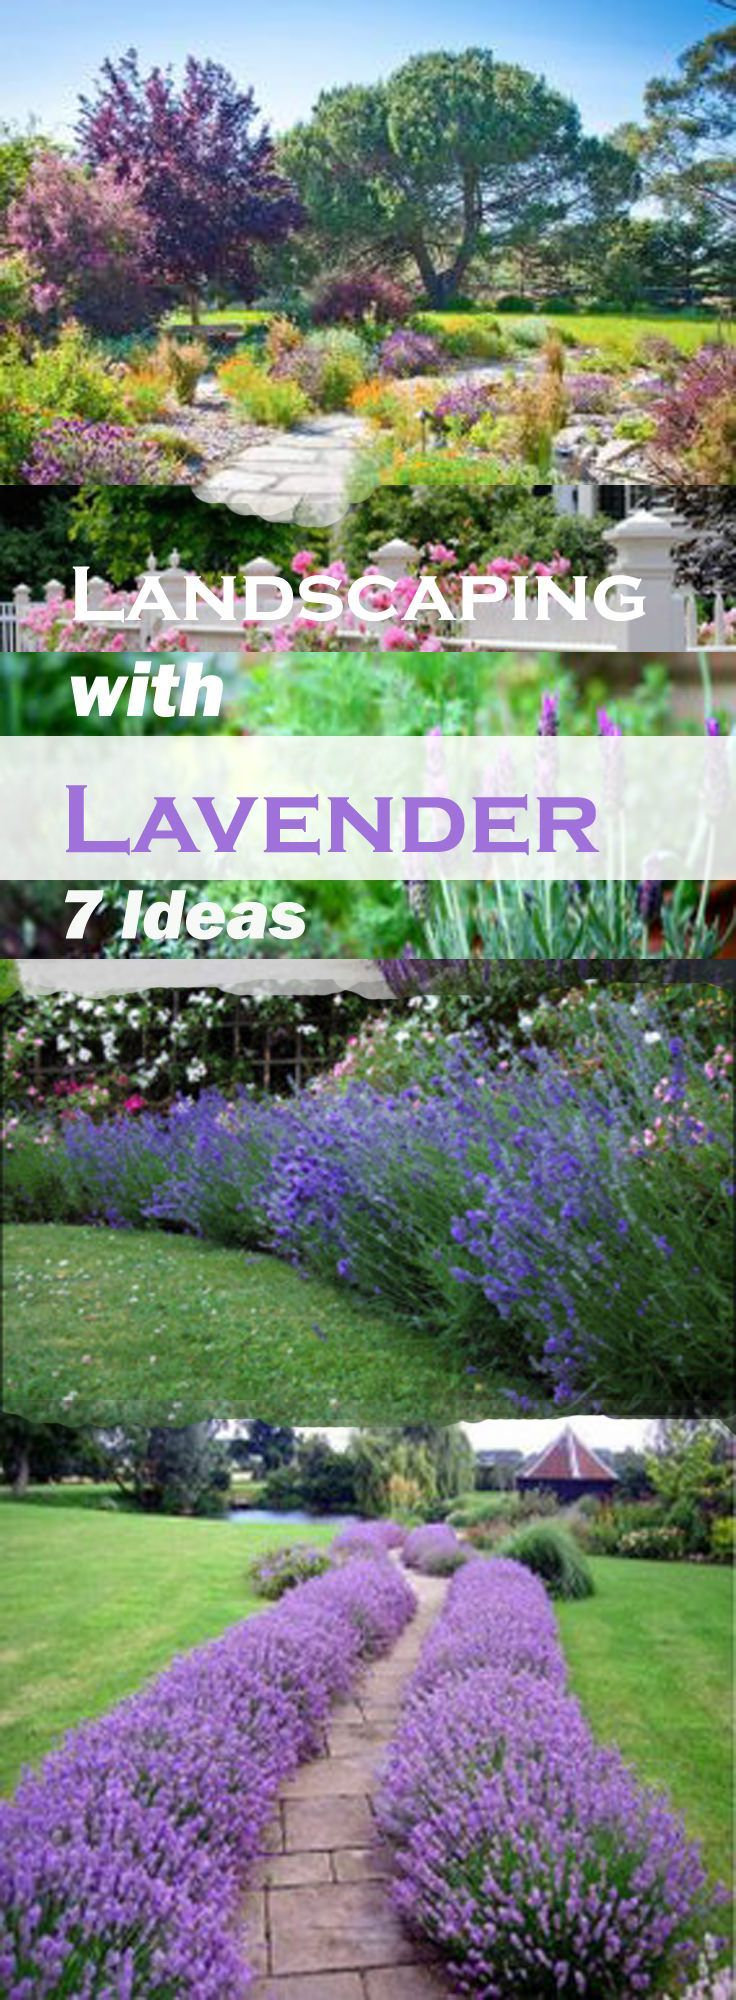 Lawn And Garden Ideas how to repair lawn patches so your yard is lush and green world of lawn Landscaping With Lavender